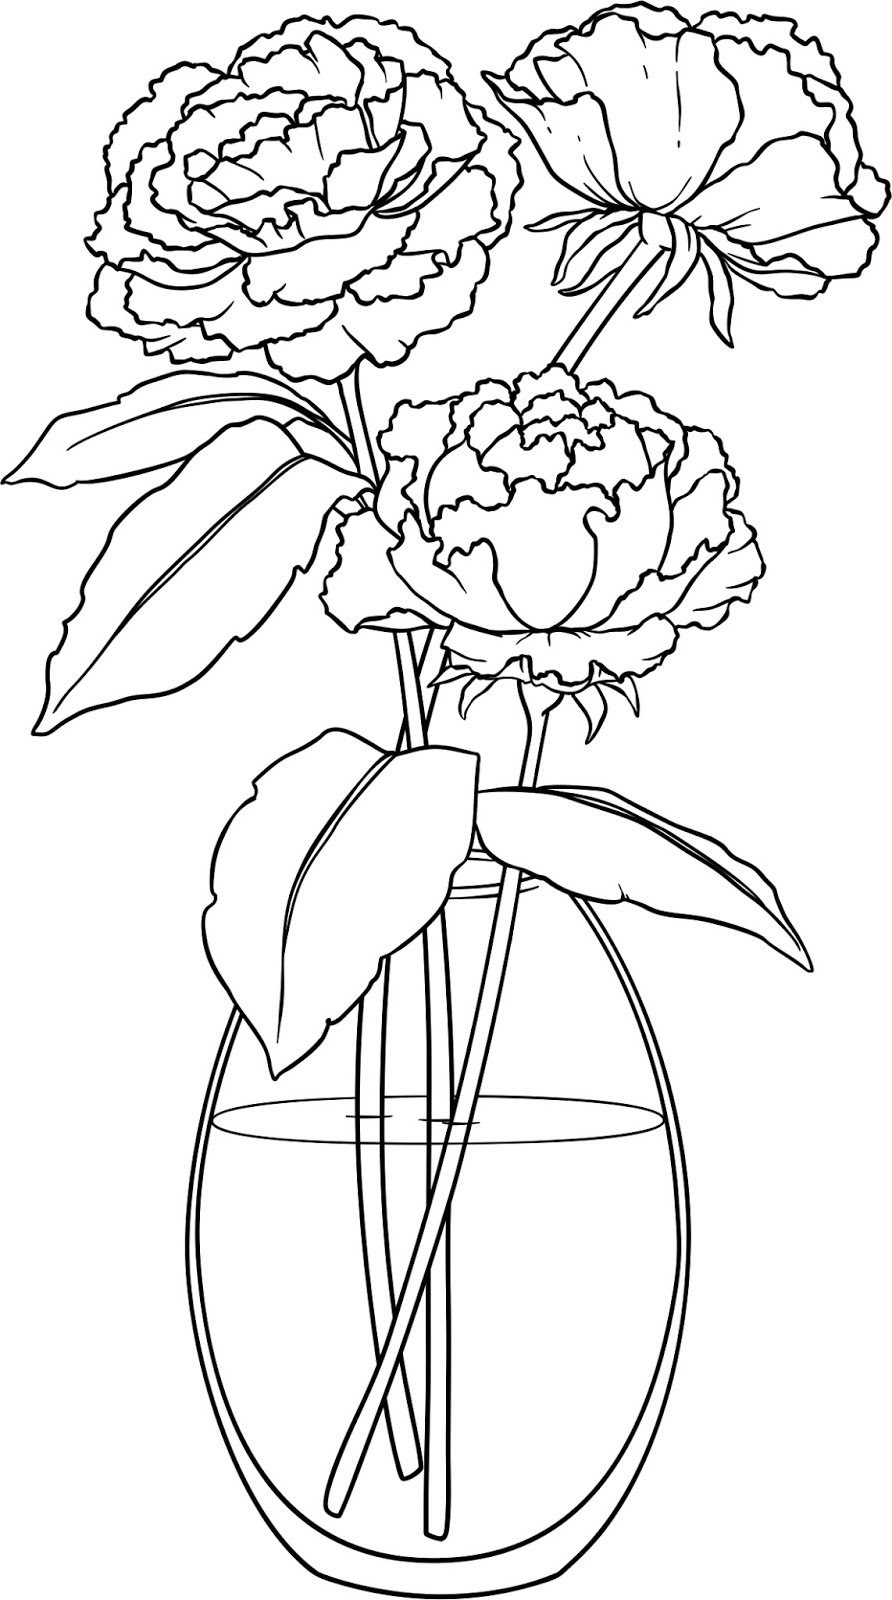 Beccy 39 s Place Peonies in a Vase